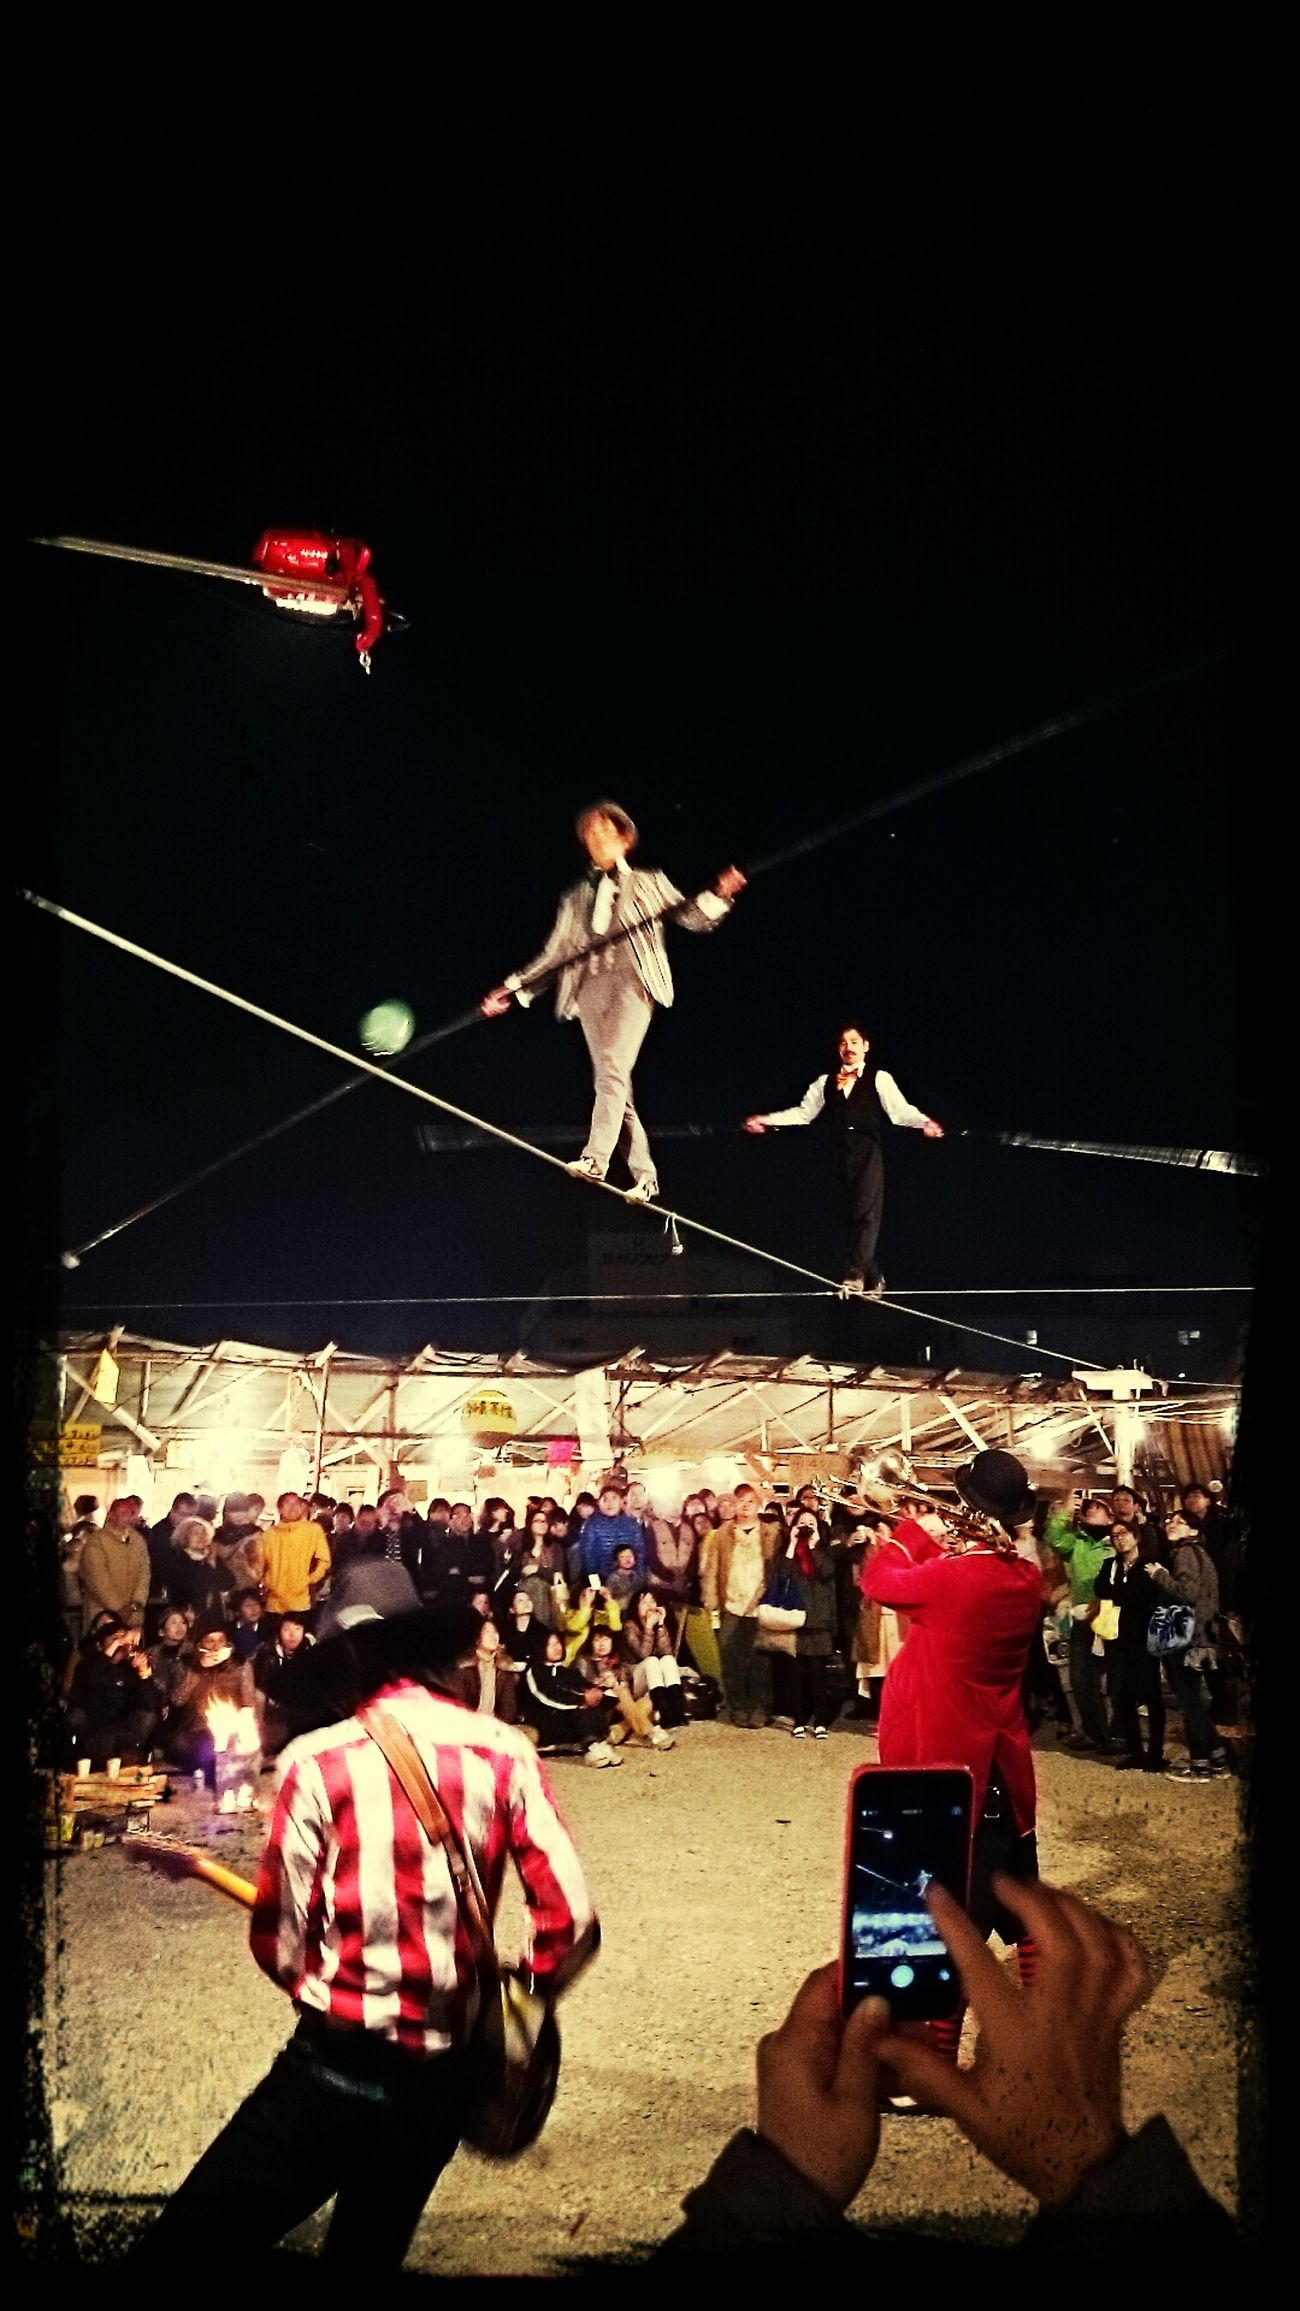 野外劇前後の、屋台村での催し。 Tightrope Walking Going To The Theater Food And Drink Autumn Night